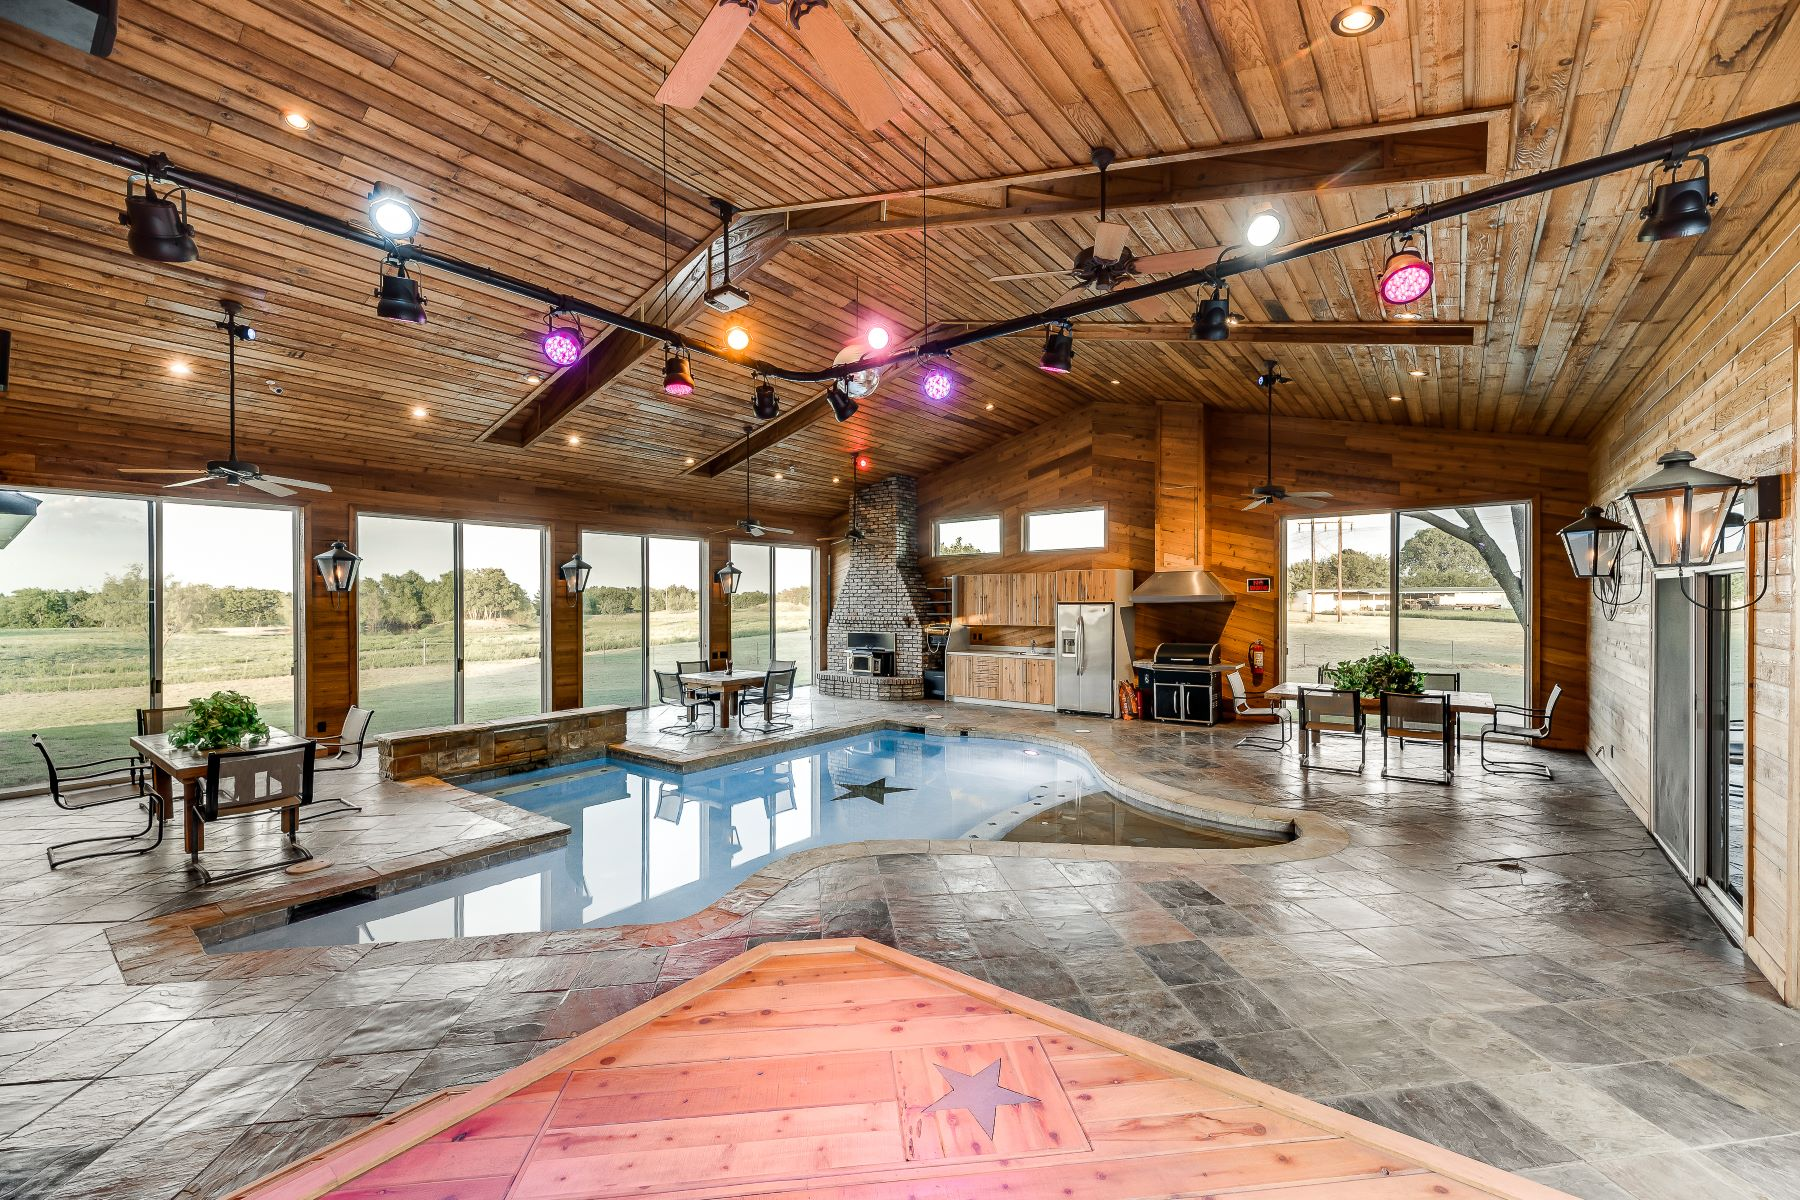 Single Family Homes for Sale at Entertain in Style! 209 Sabine Creek Road 2 acres Royse City, Texas 75189 United States